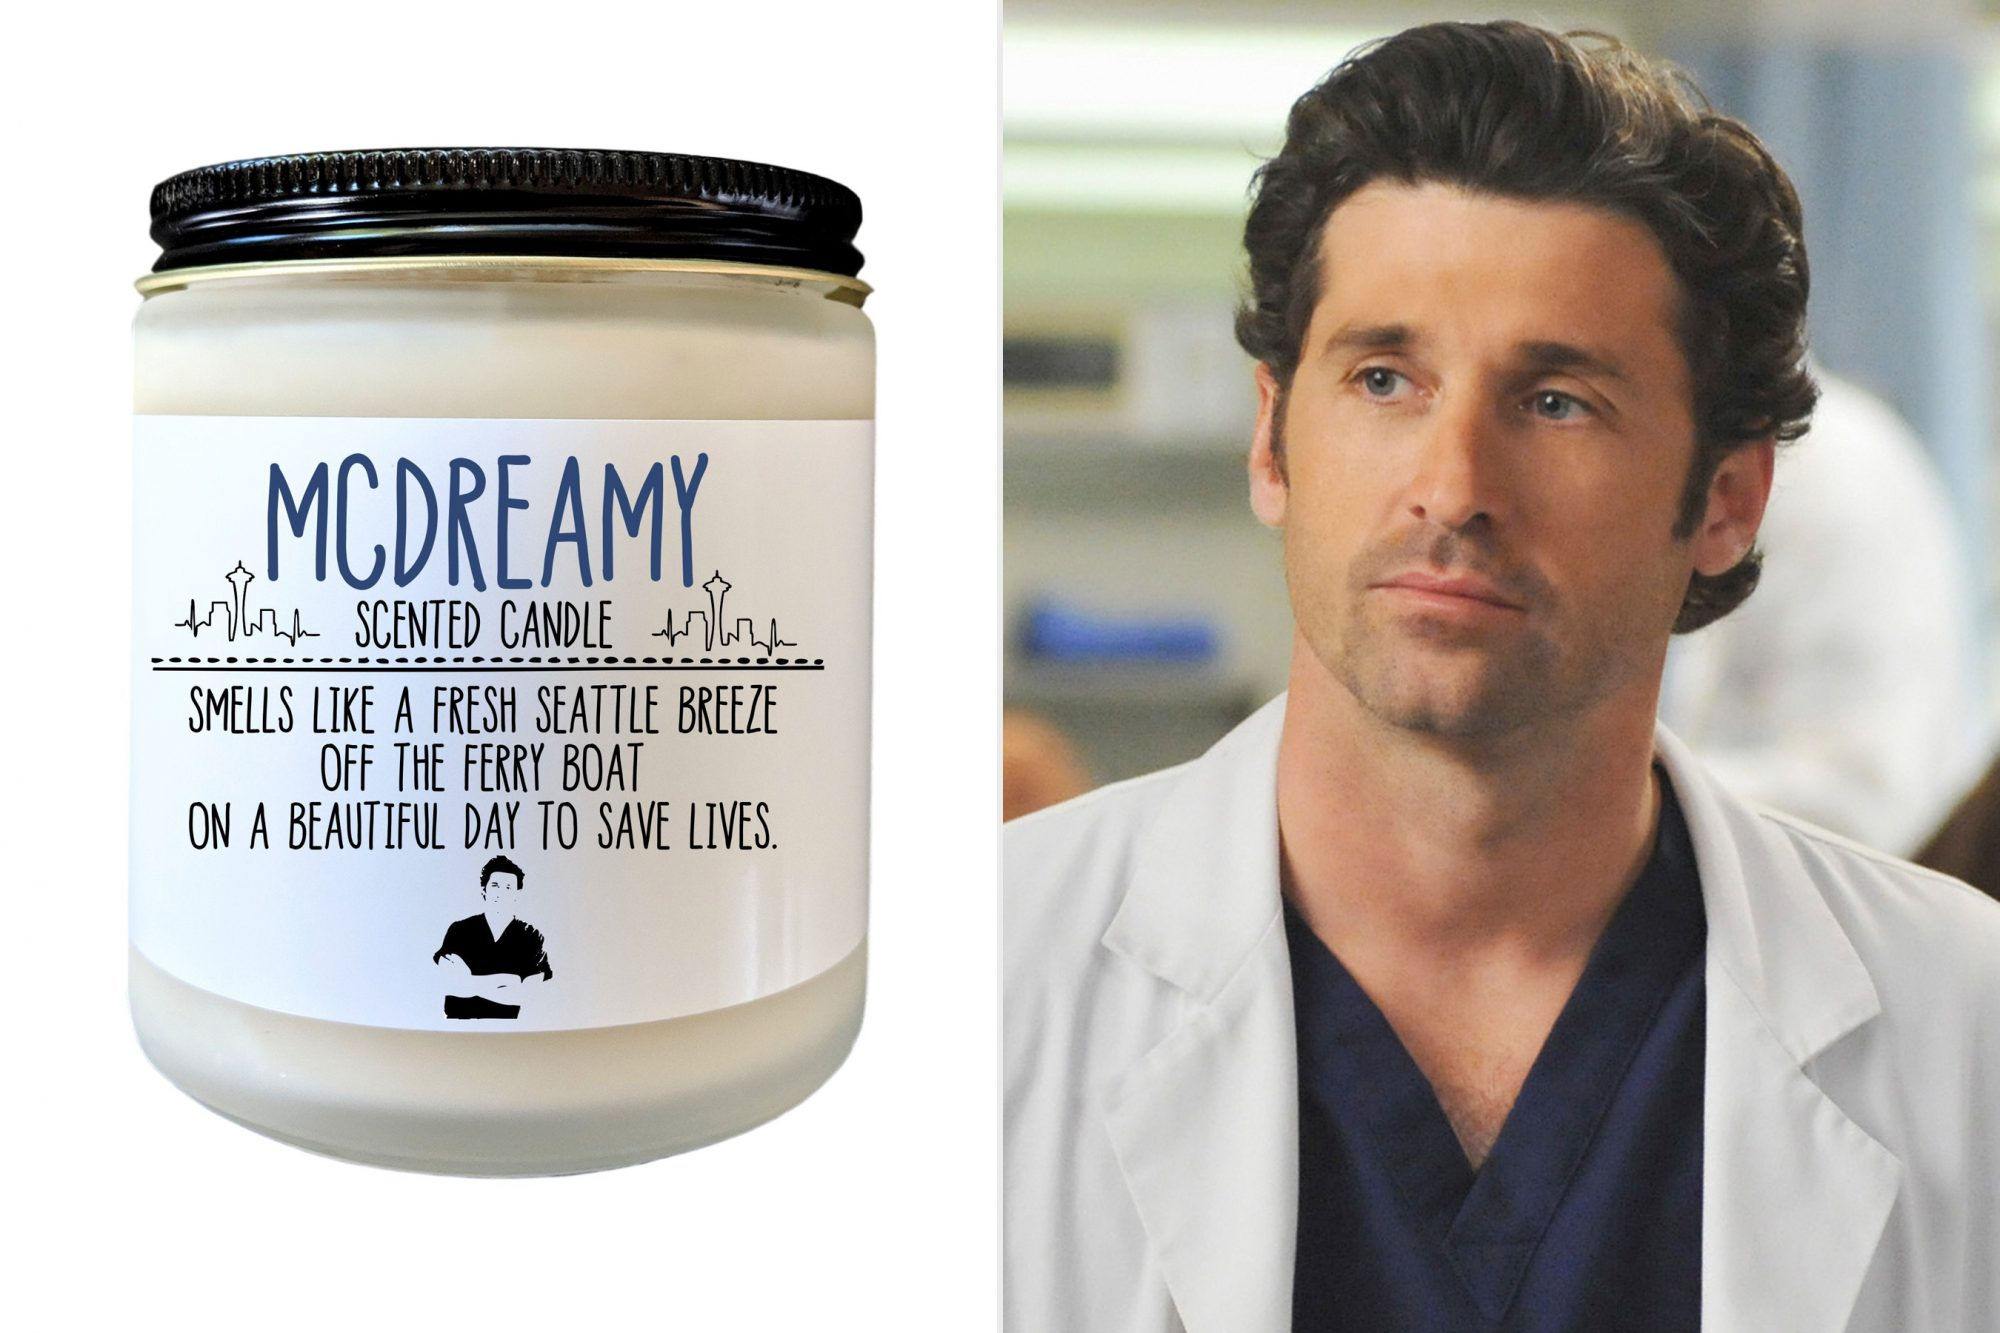 McDreamy candle